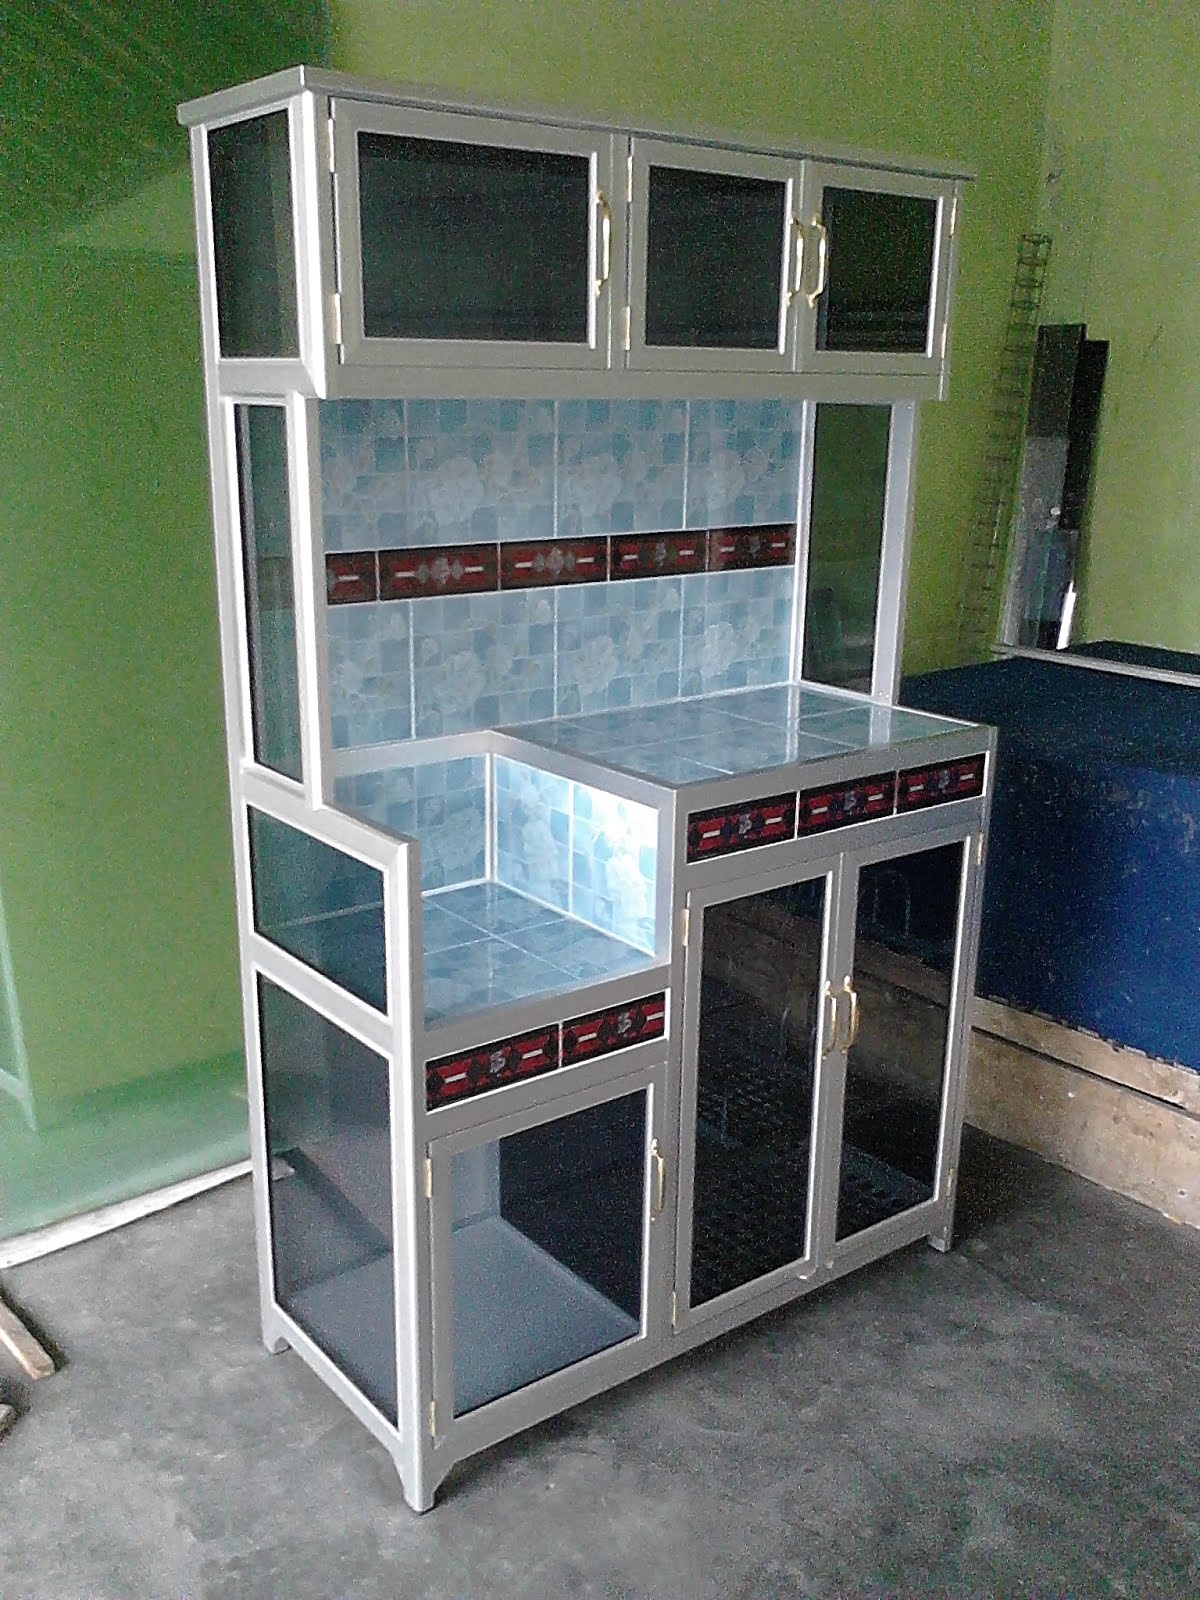 Harga kitchen set aluminium murah jual for Harga kitchen set aluminium per meter